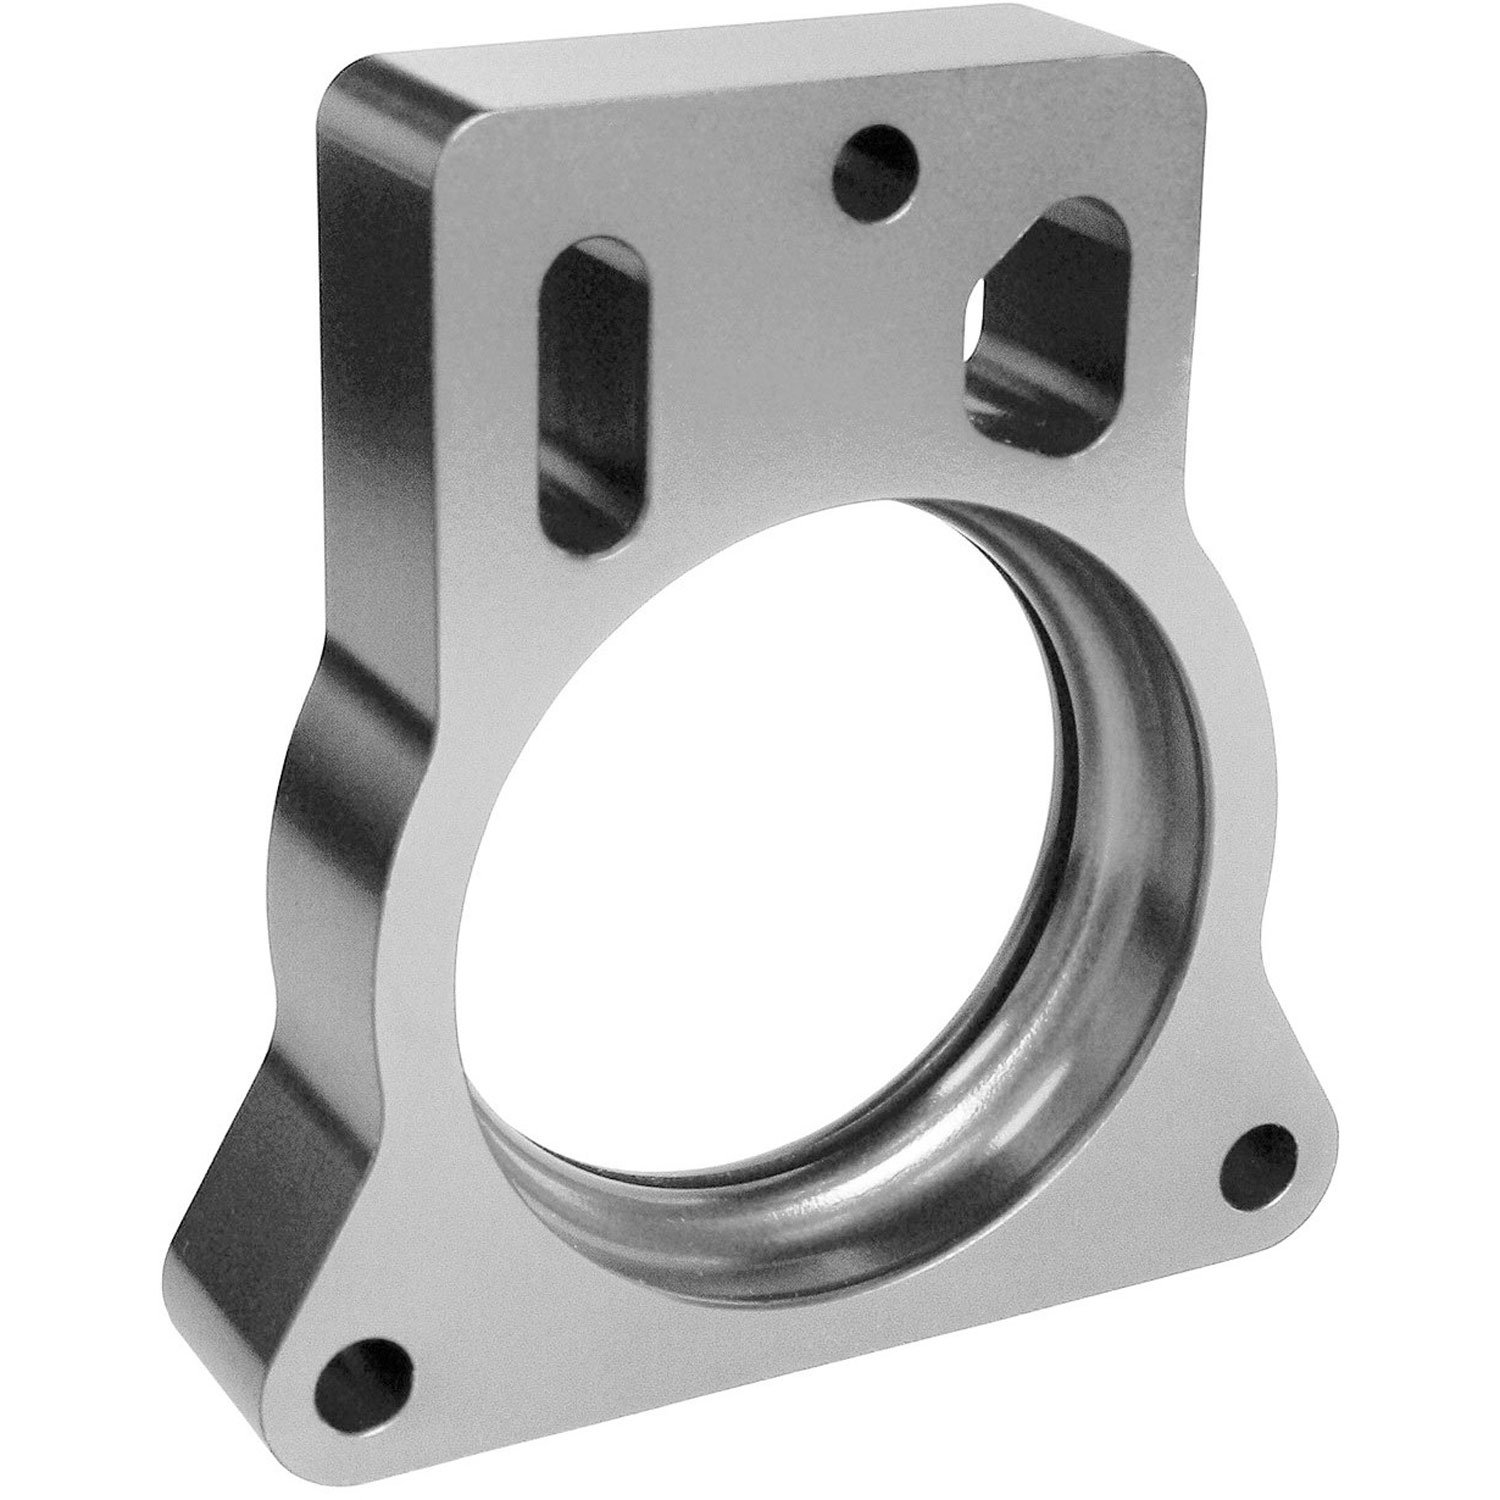 Hamburger's 3262 - Hamburger's Torque-Curve EFI Spacers